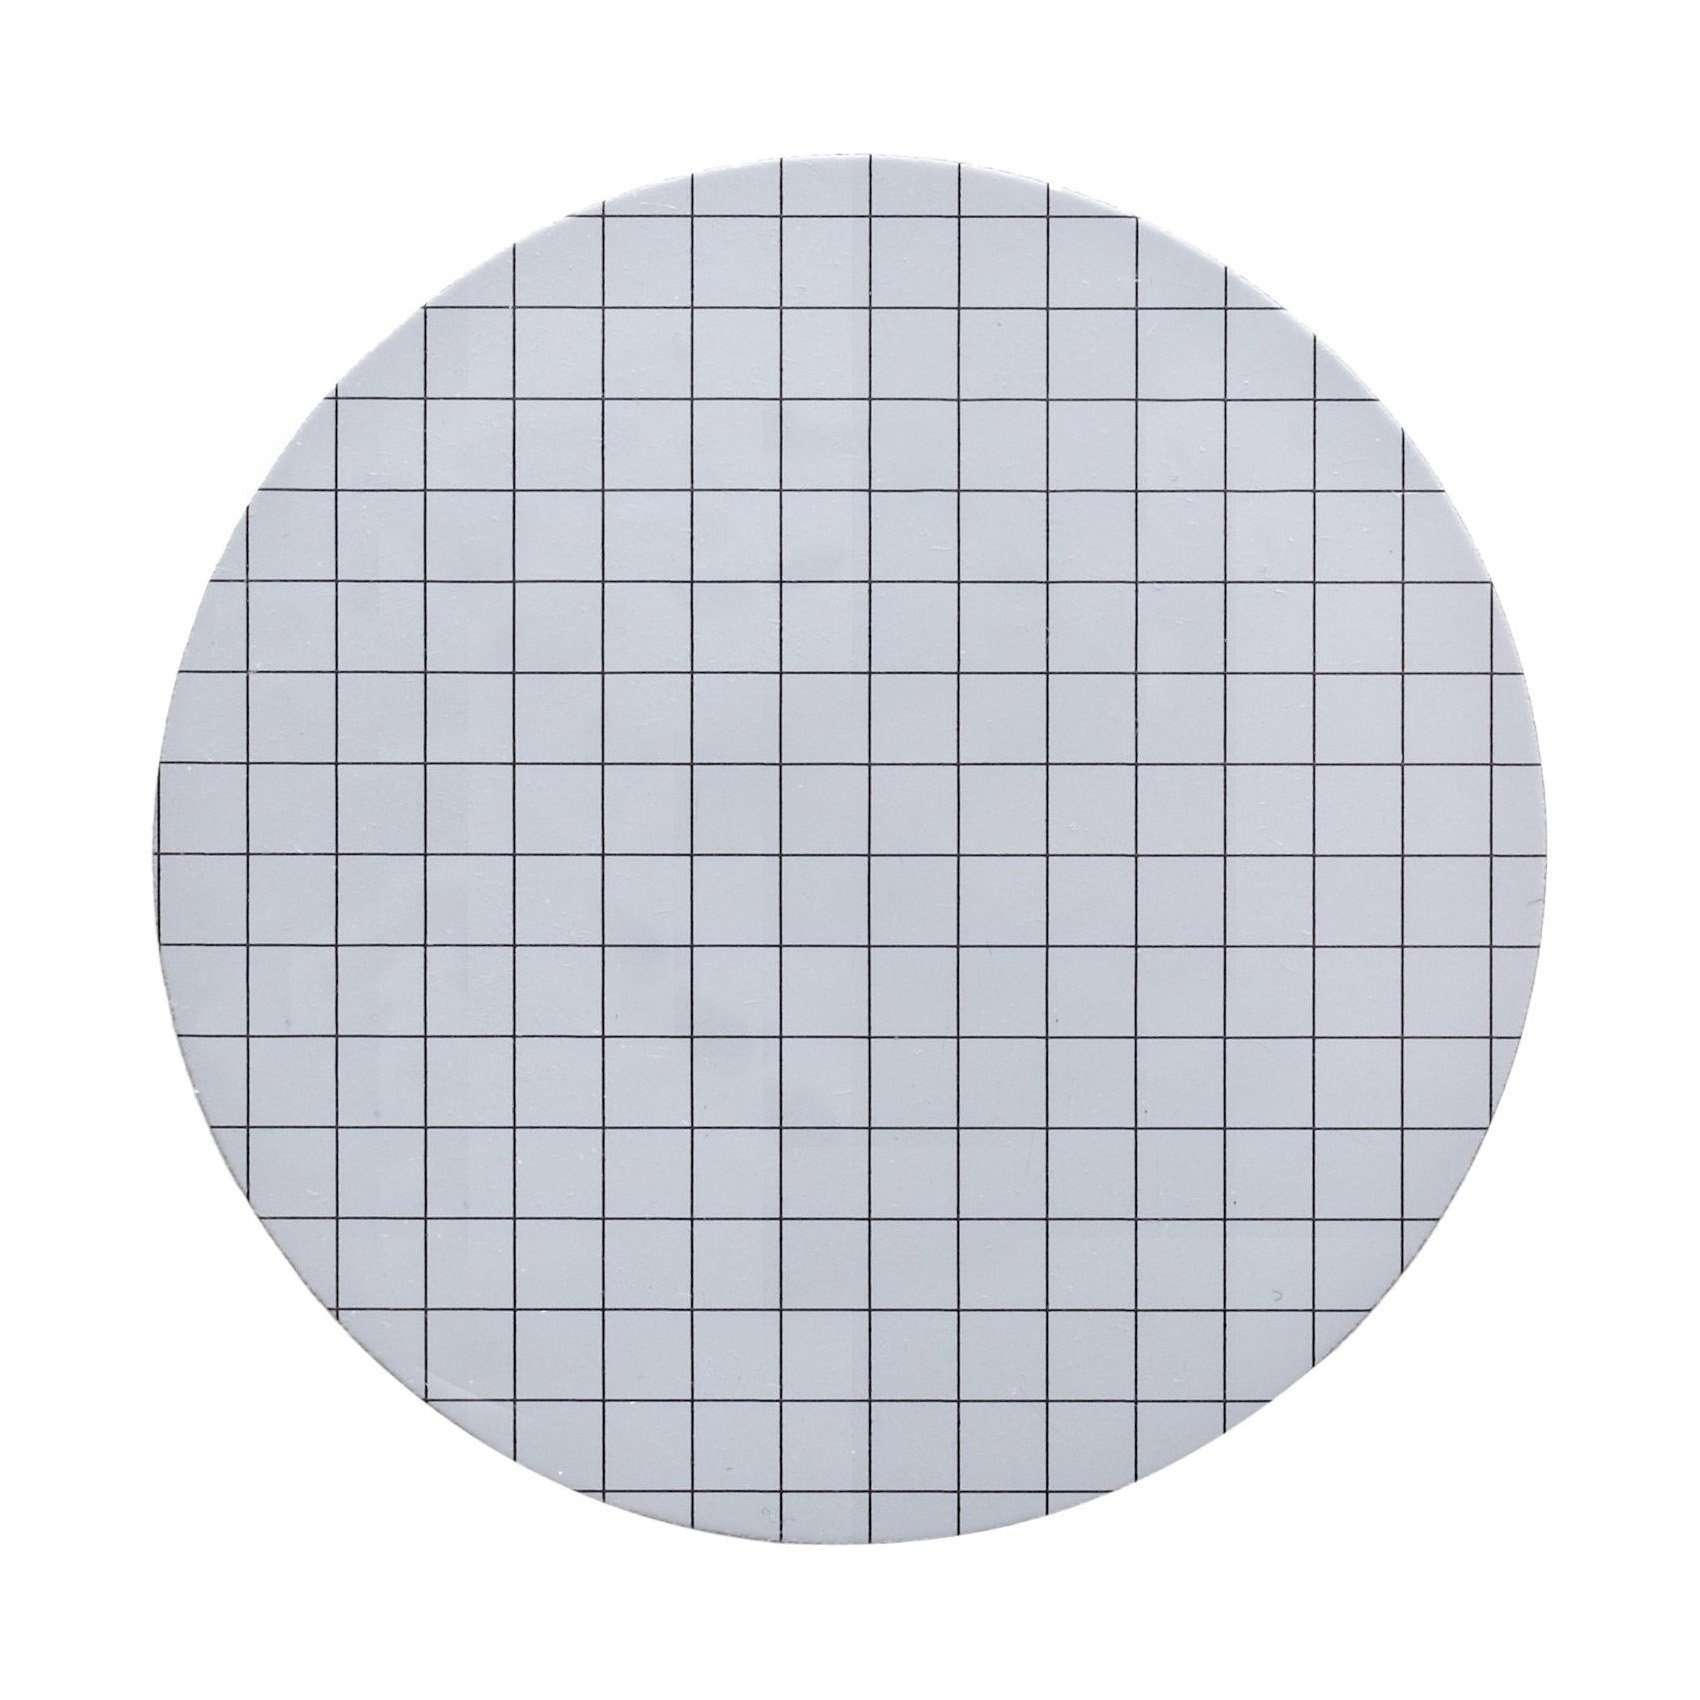 Whatman 10406870 Cellulose ME25/21 ST Mixed Ester Filter Membrane, 47mm White Circle with 3.1mm Black Grid Sterile, 0.45 Micron (Pack of 100) by Whatman